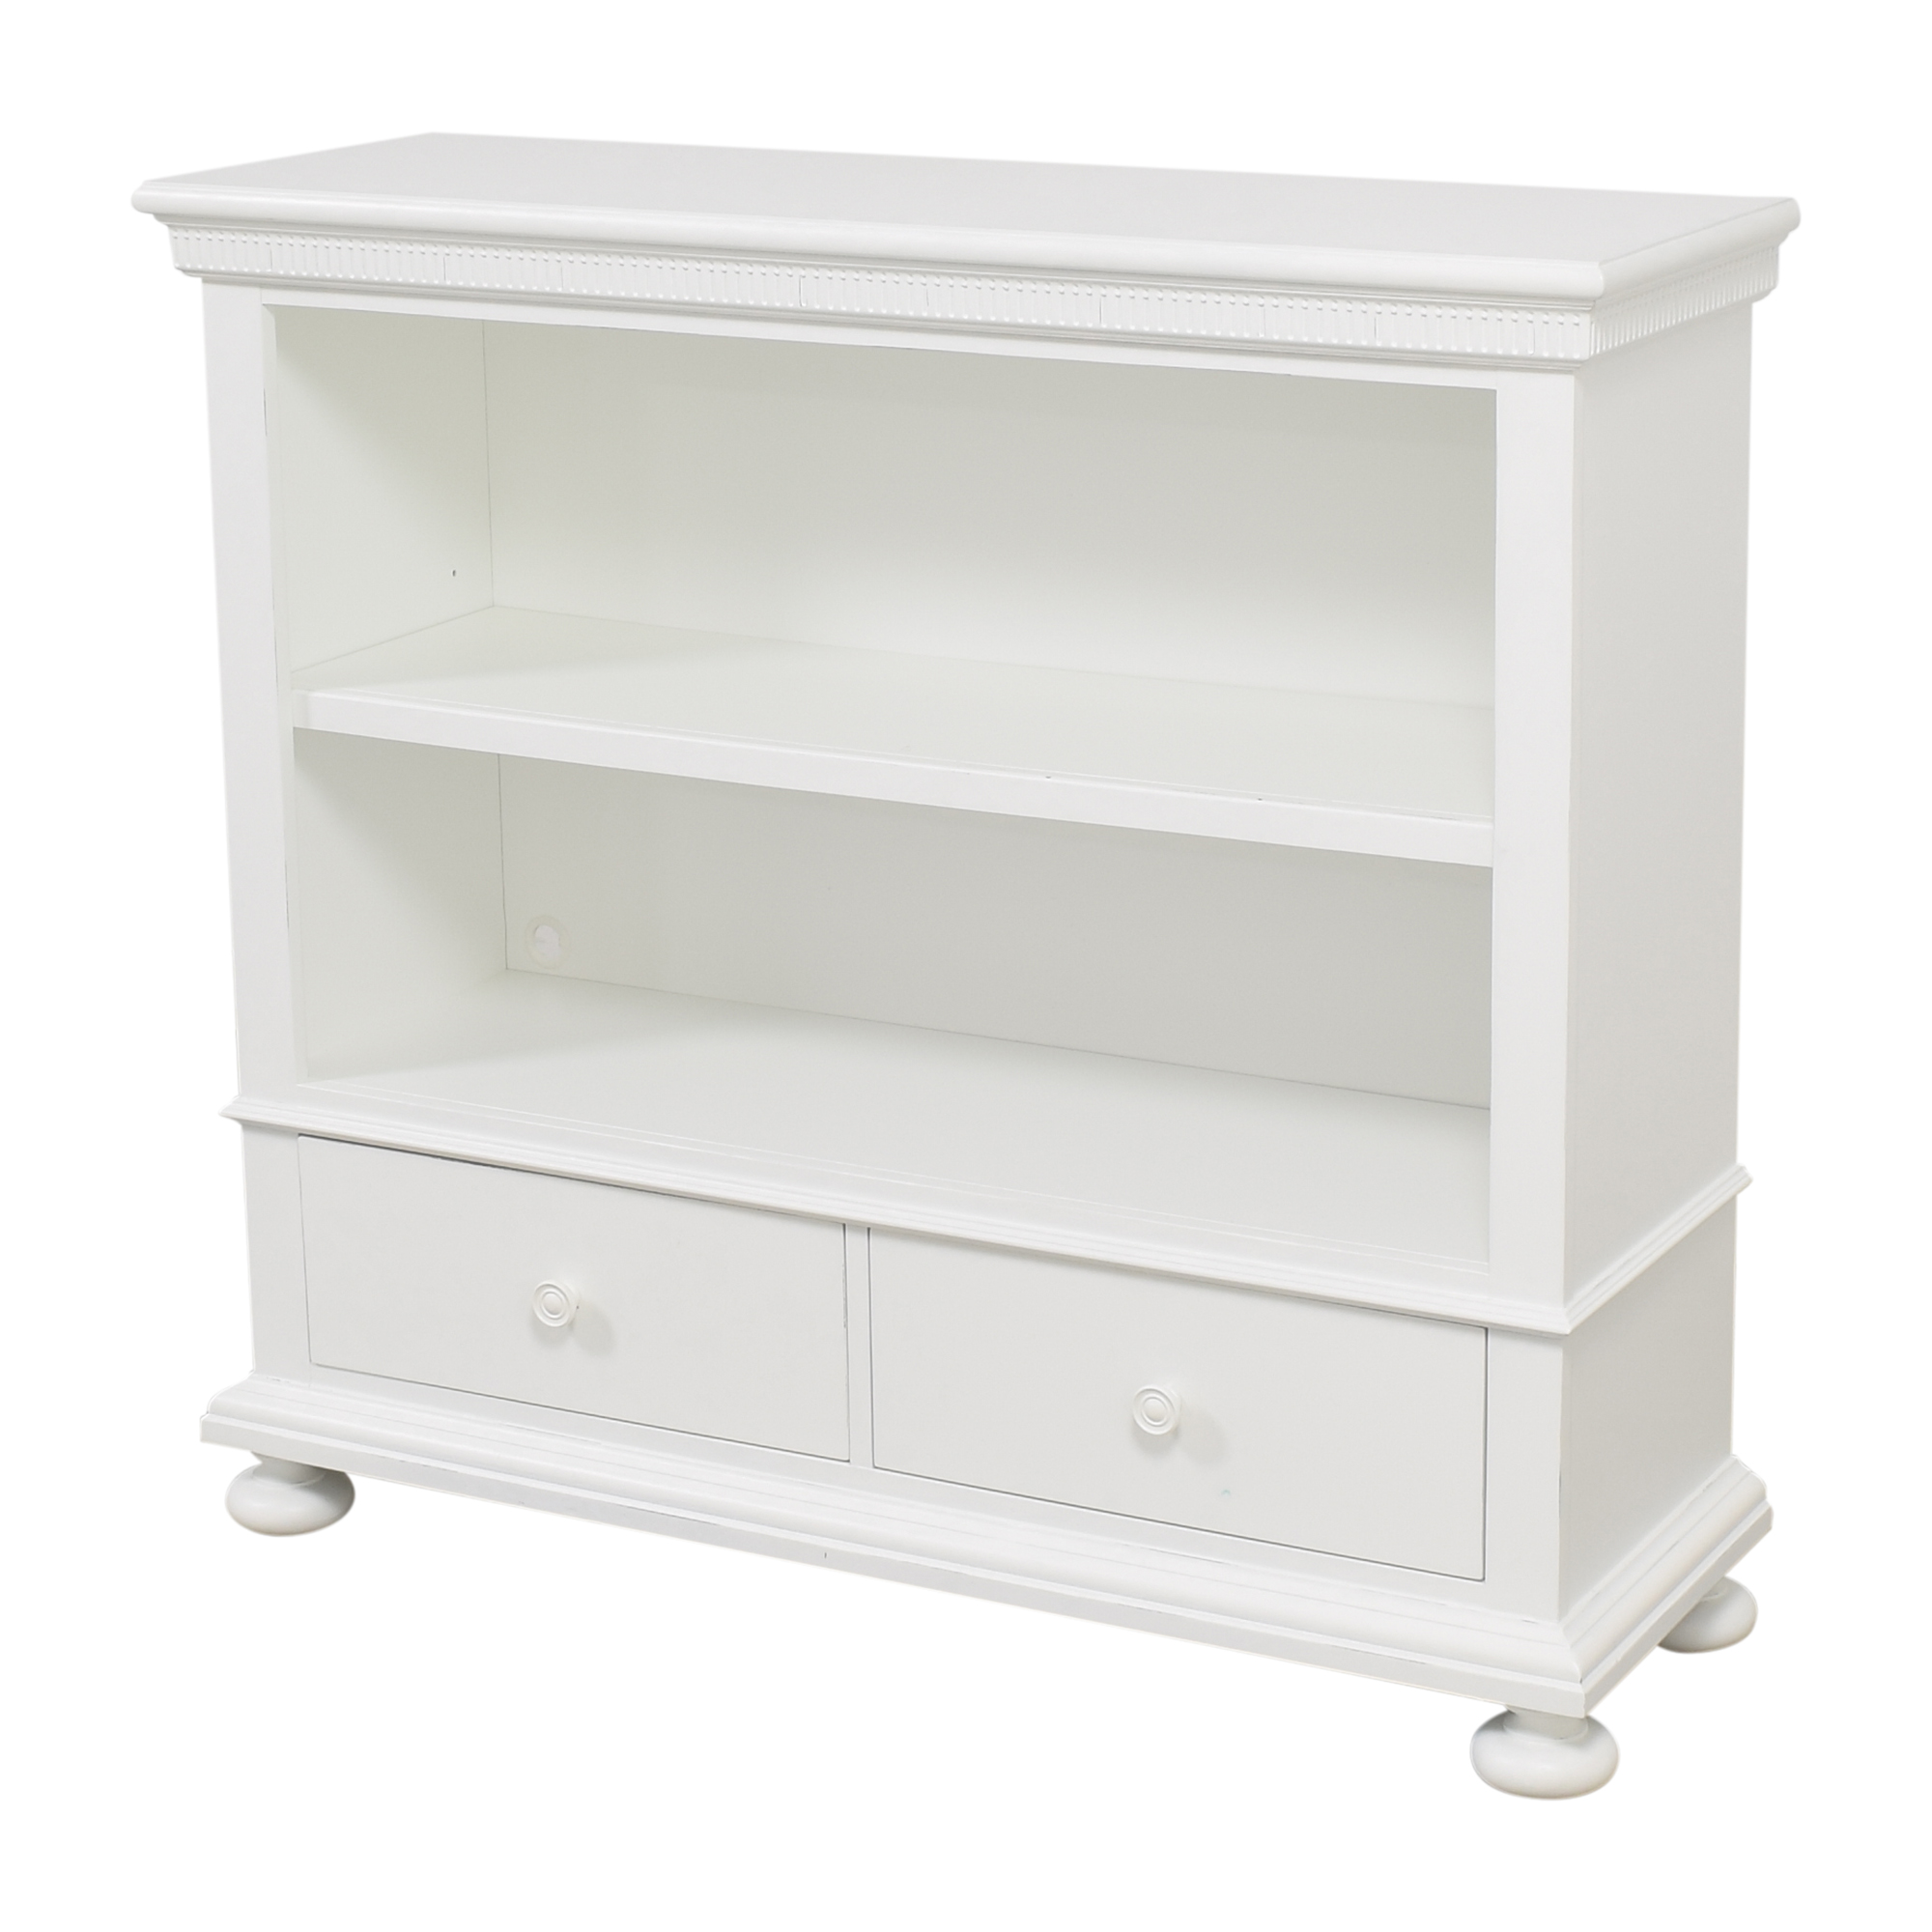 Stone & Leigh Stone & Leigh Smiling Hill Standard Bookcase coupon